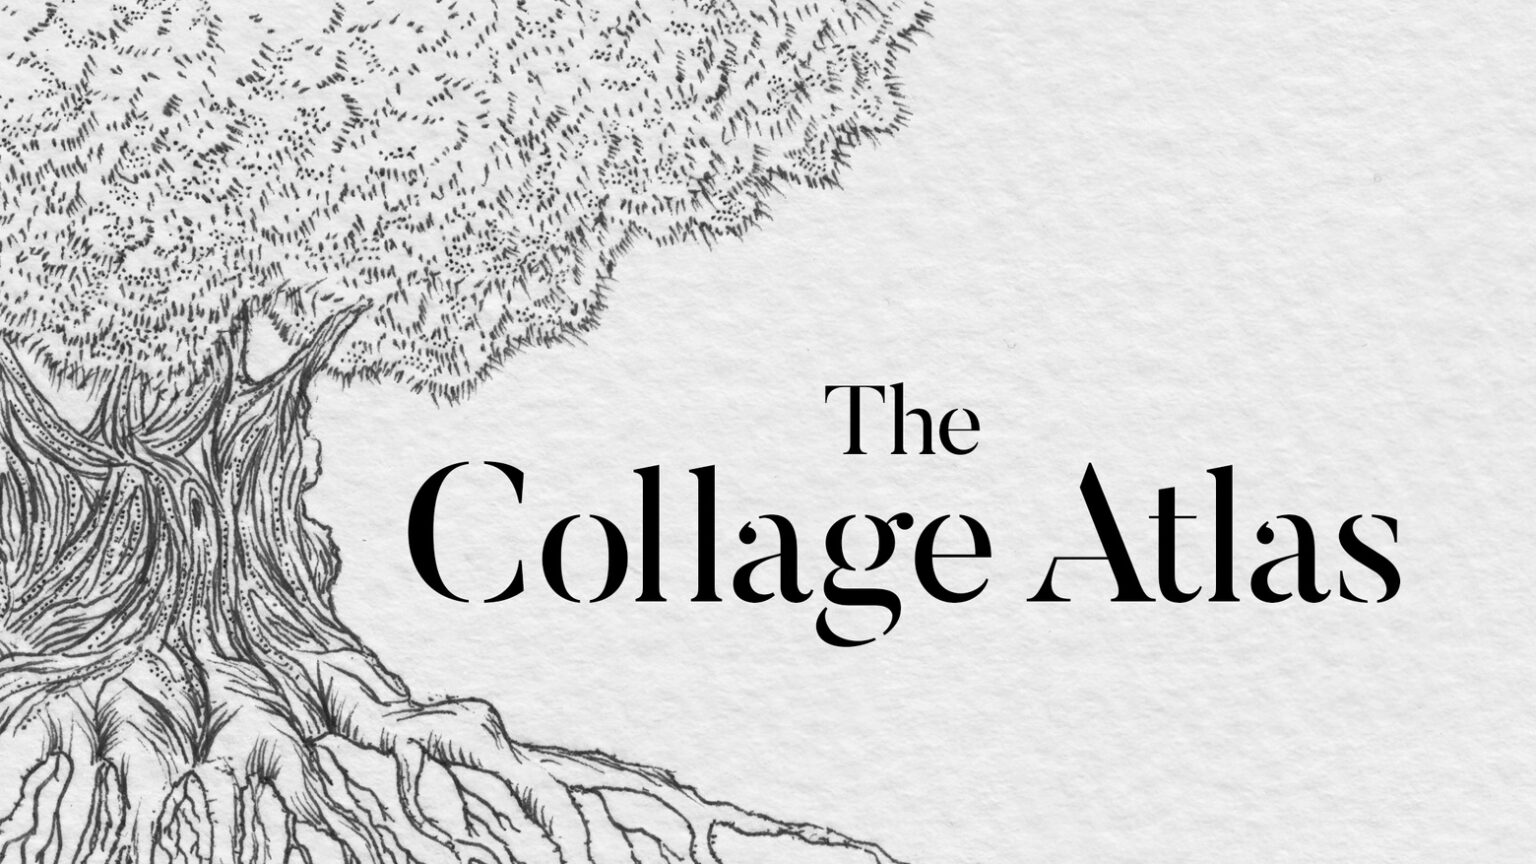 'The Collage Atlas' debuted Friday on Apple Arcade.